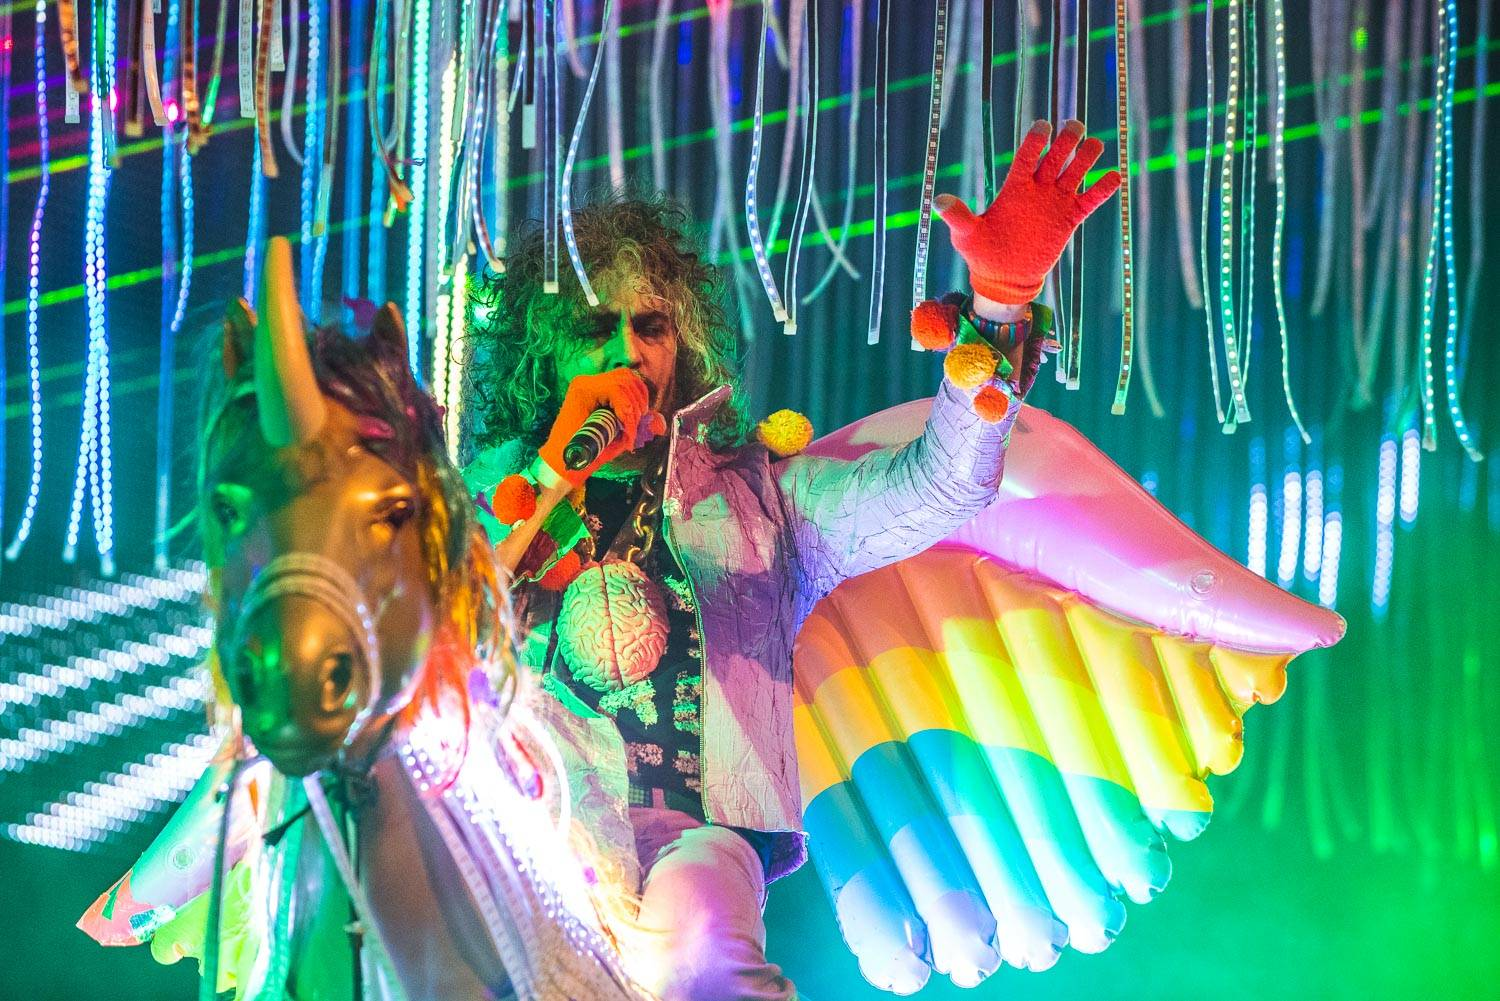 Flaming Lips at the Queen Elizabeth Theatre, Vancouver, May 15 2017. Pavel Boiko photo.